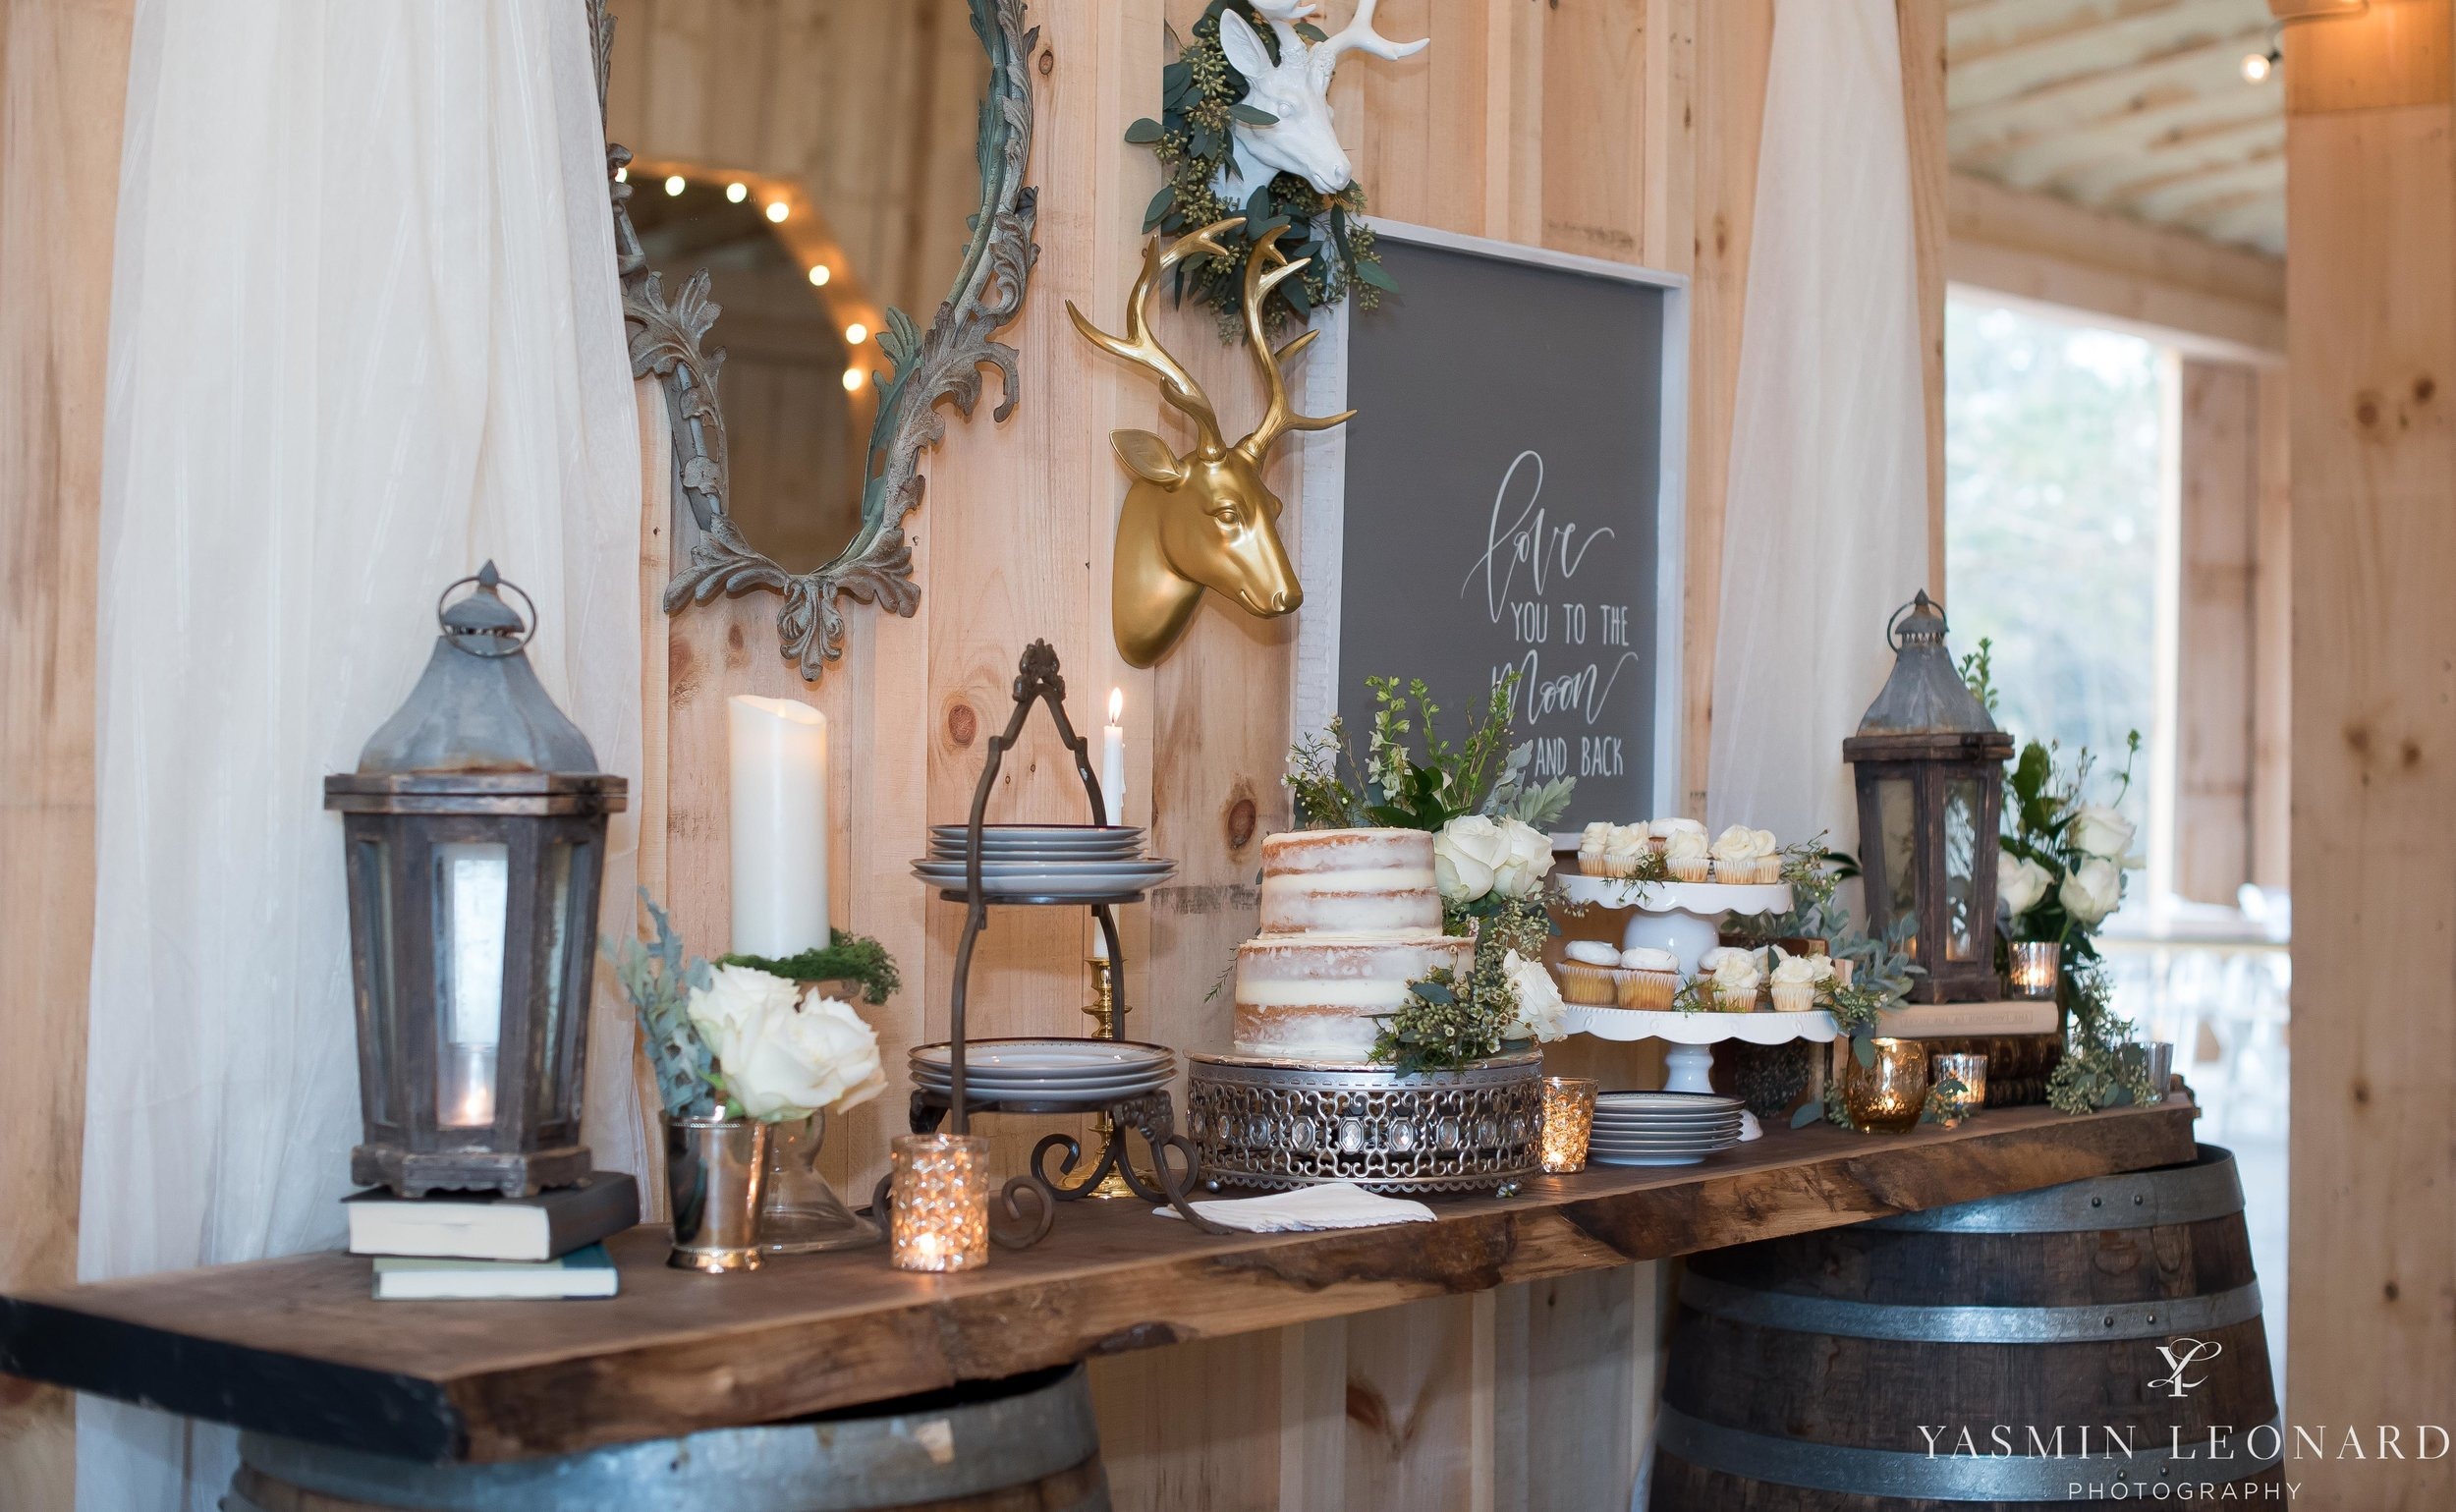 Old Homeplace Vineyard - Grits and Glitter - Dashing Dames Bridal Boutique - Just Priceless - Yasmin Leonard Photography - High Point Weddings - NC Weddings - NC Wedding Venues - High Point Jewelers - NC Wines - NC Vineyards - Cupcake Cuties-64.jpg